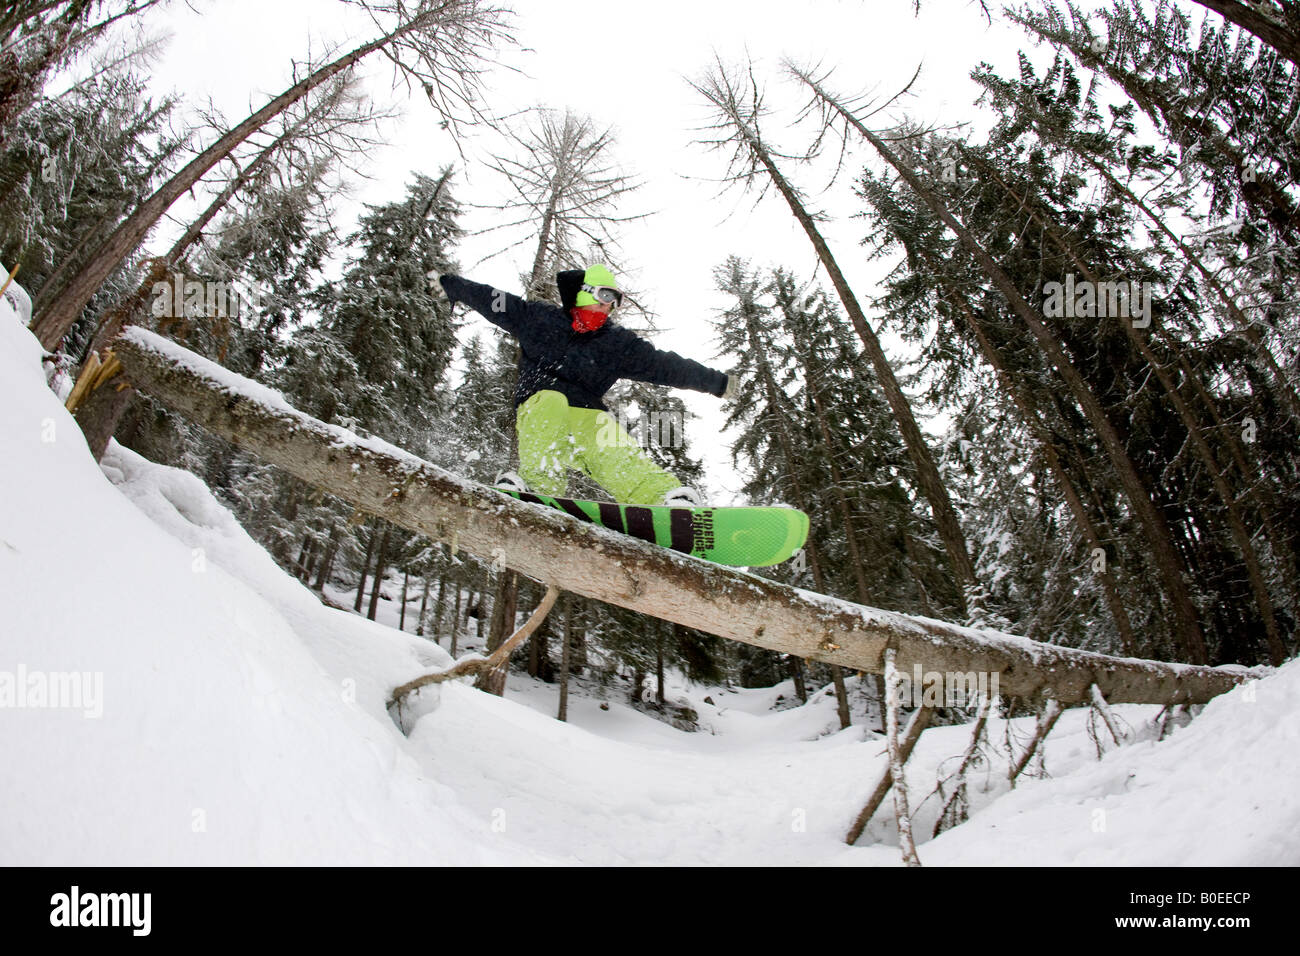 Zac Burke slides a tree in the French Alps. - Stock Image